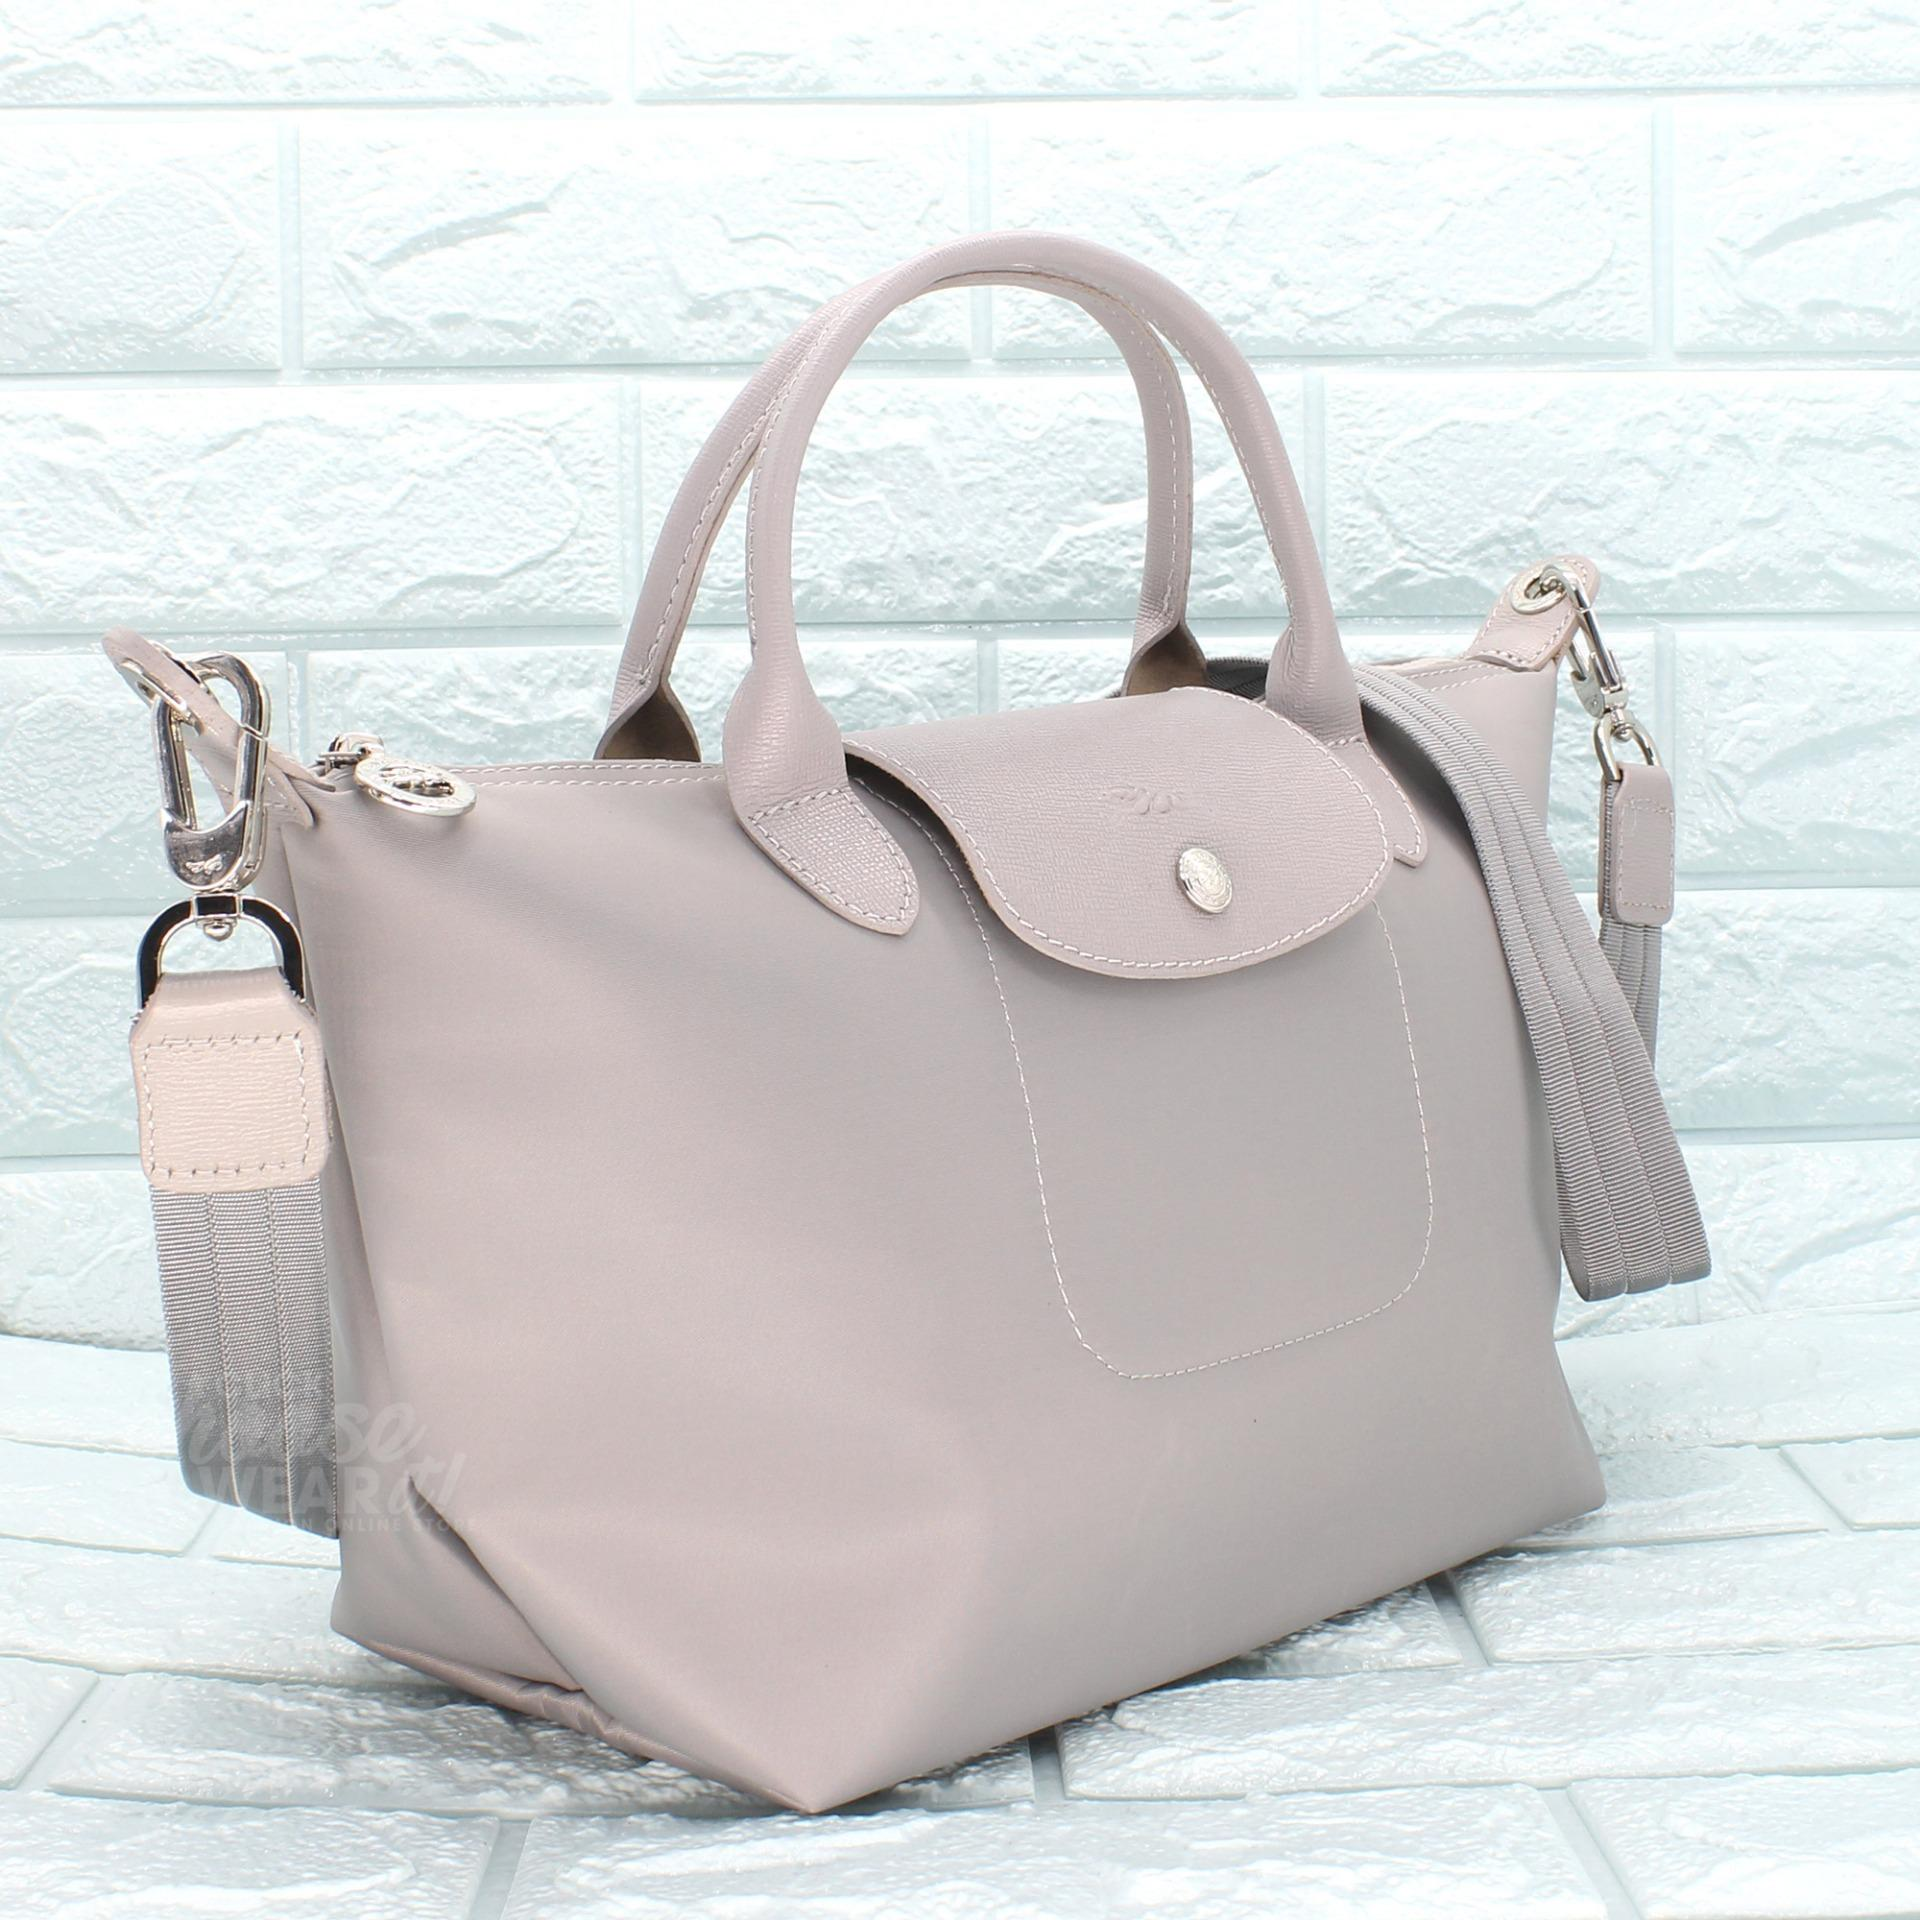 22a479a5daac Authentic Longchamp Made in France Small Le Pliage Neo Top Handle Tote -  Light Gray